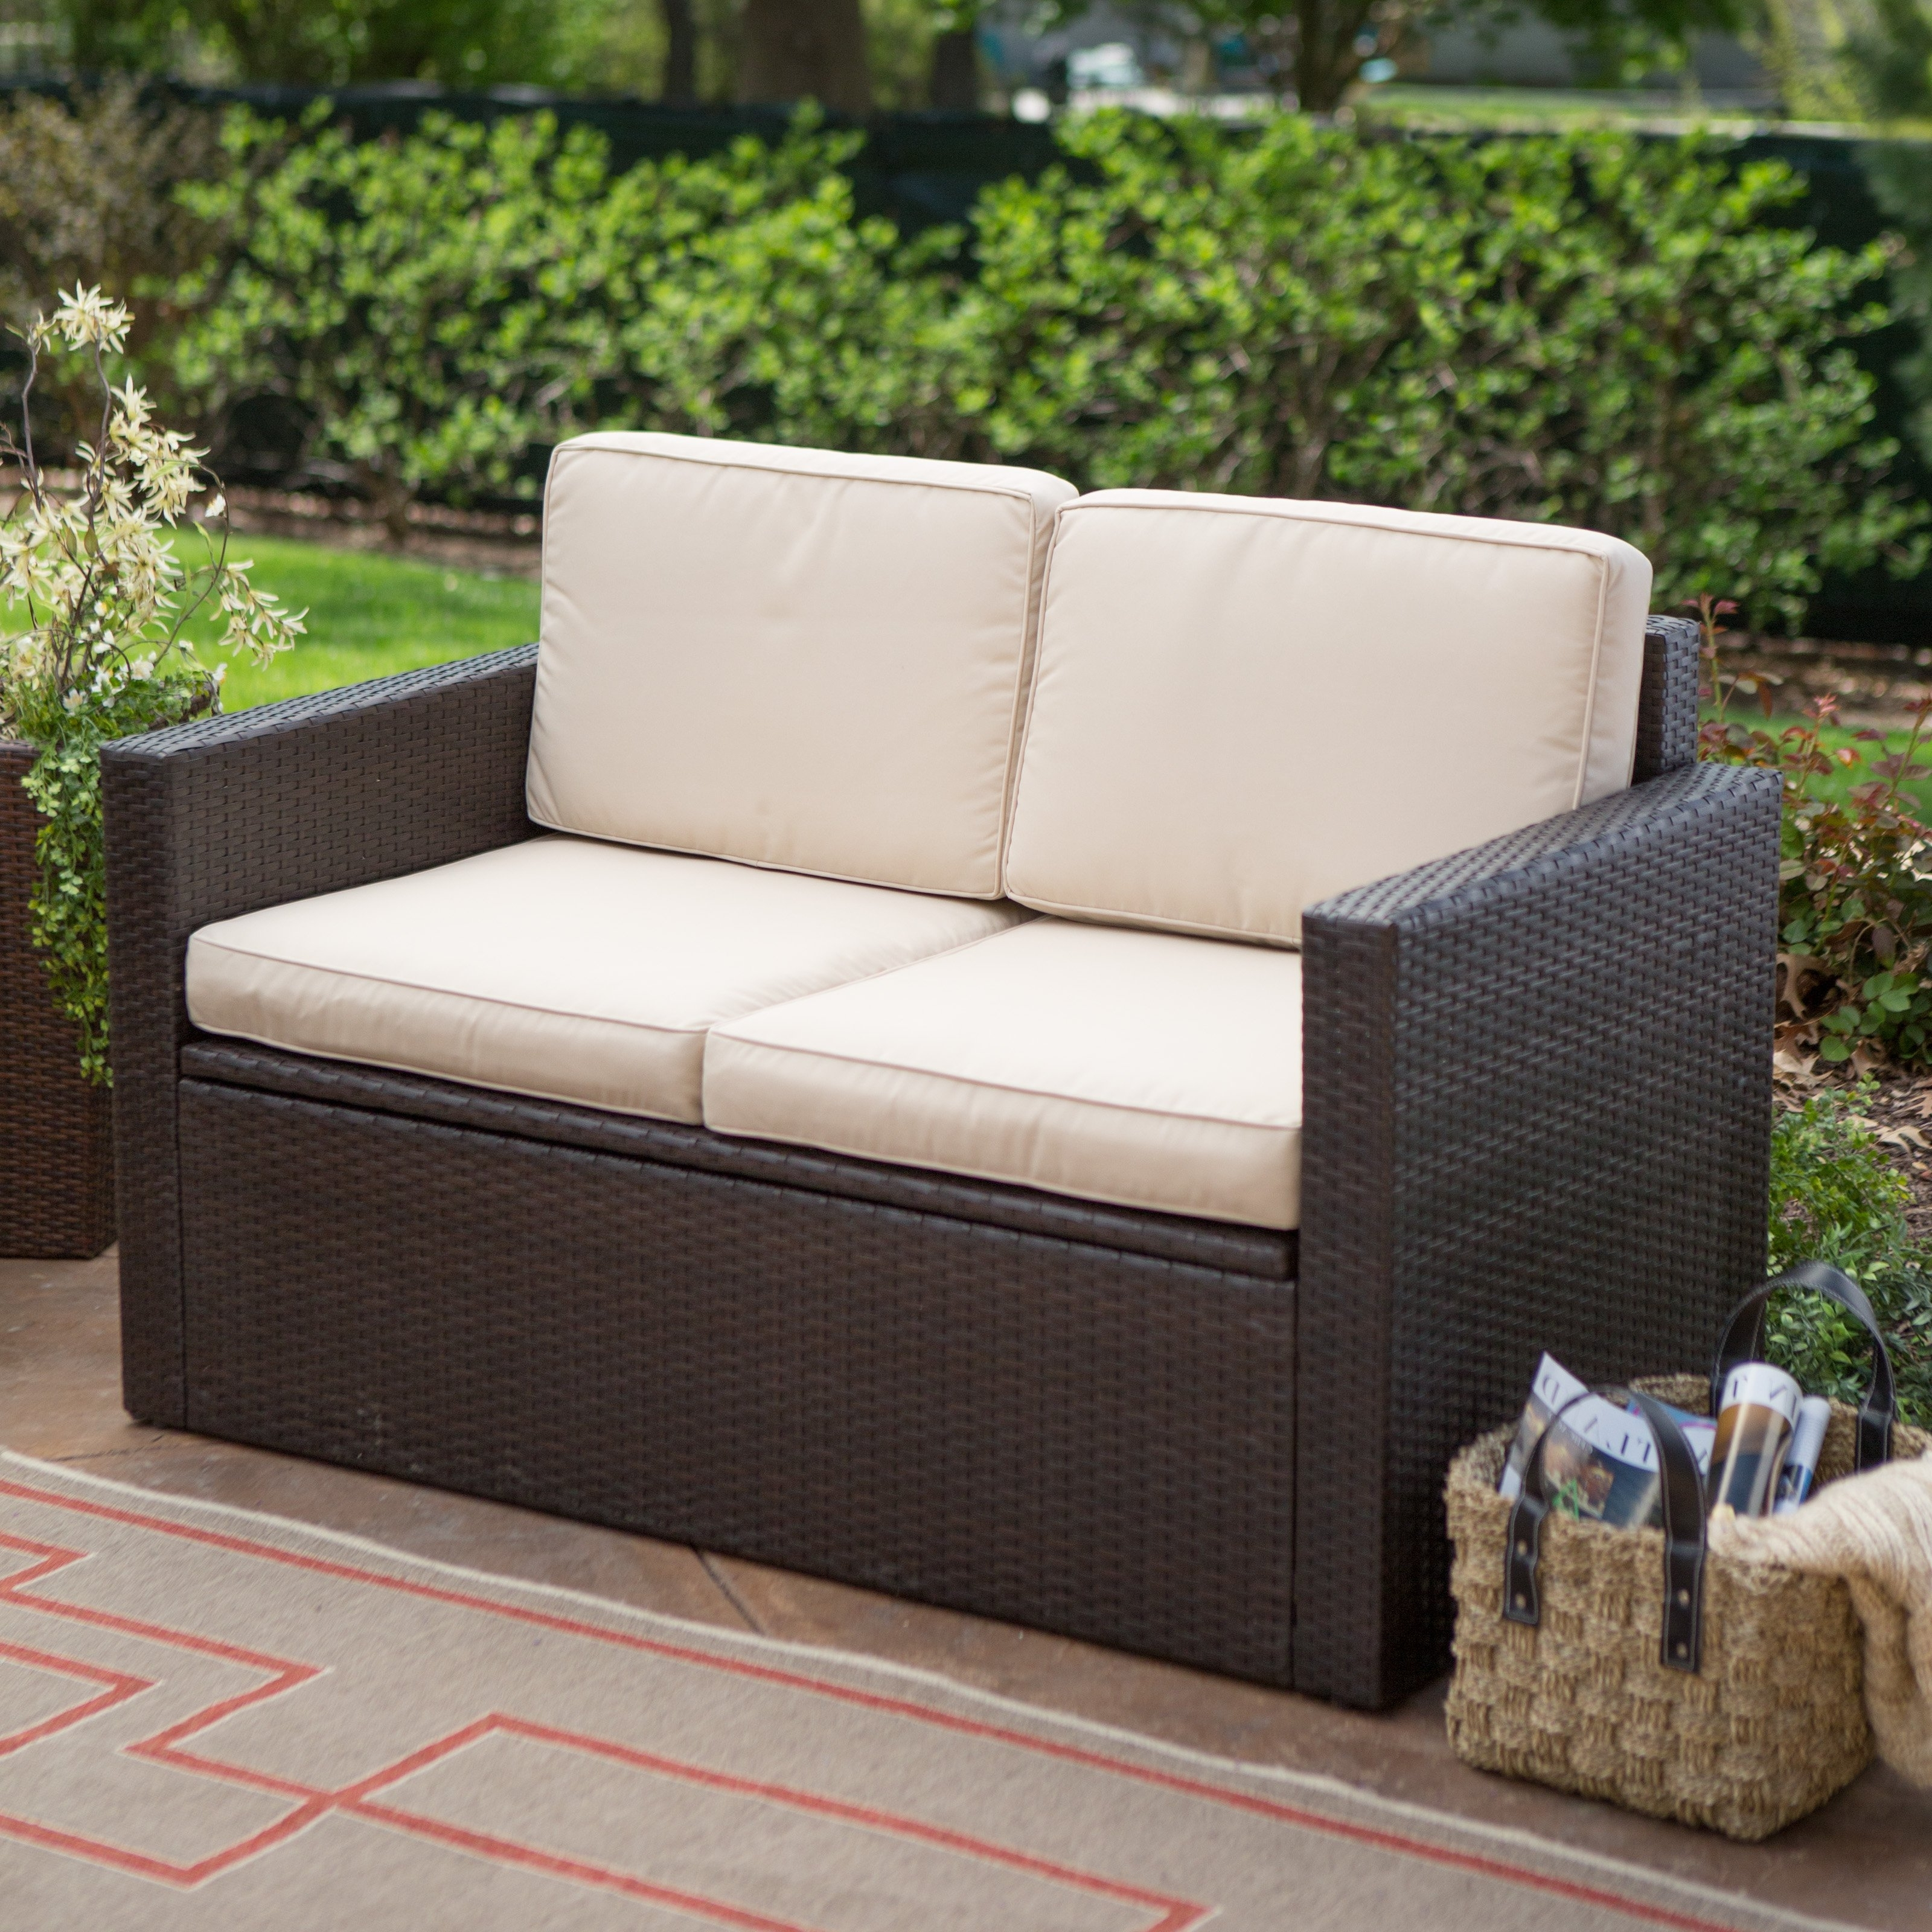 Favorite Patio Conversation Sets With Storage Within Coral Coast Berea Wicker 4 Piece Conversation Set With Storage (View 5 of 20)